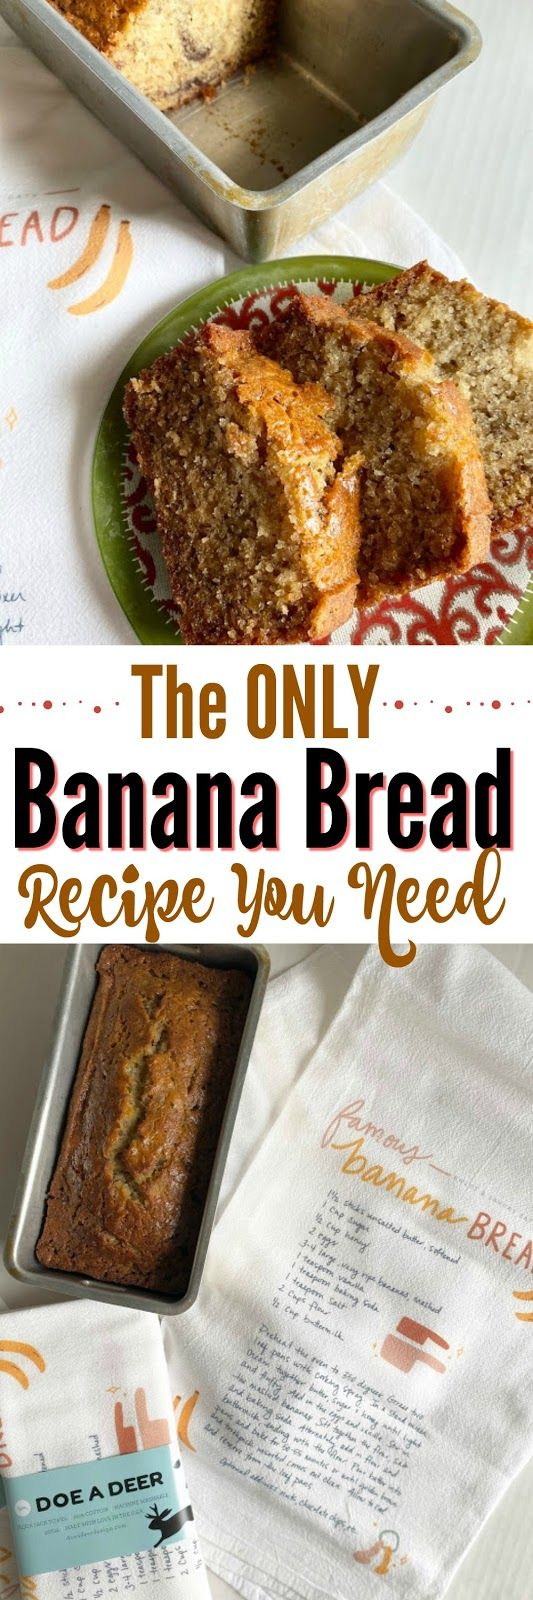 Today I'm sharing my Famous Banana Bread recipe + a brand new product that just was placed in my shop. You'll want to sn…